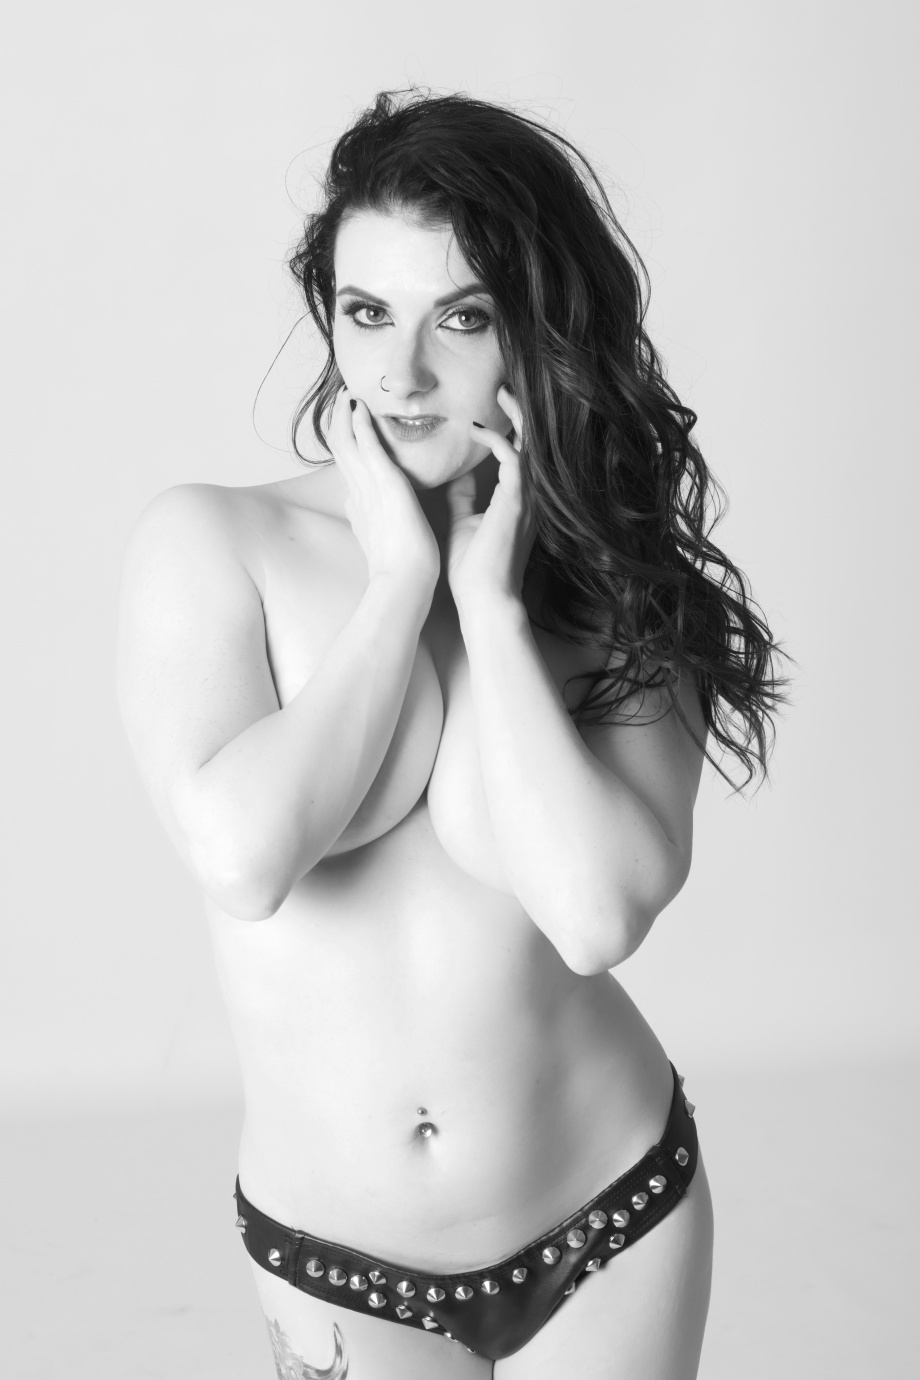 cherry chains, pole, dance, pole training, topless, black and white, implied, glamour, studio